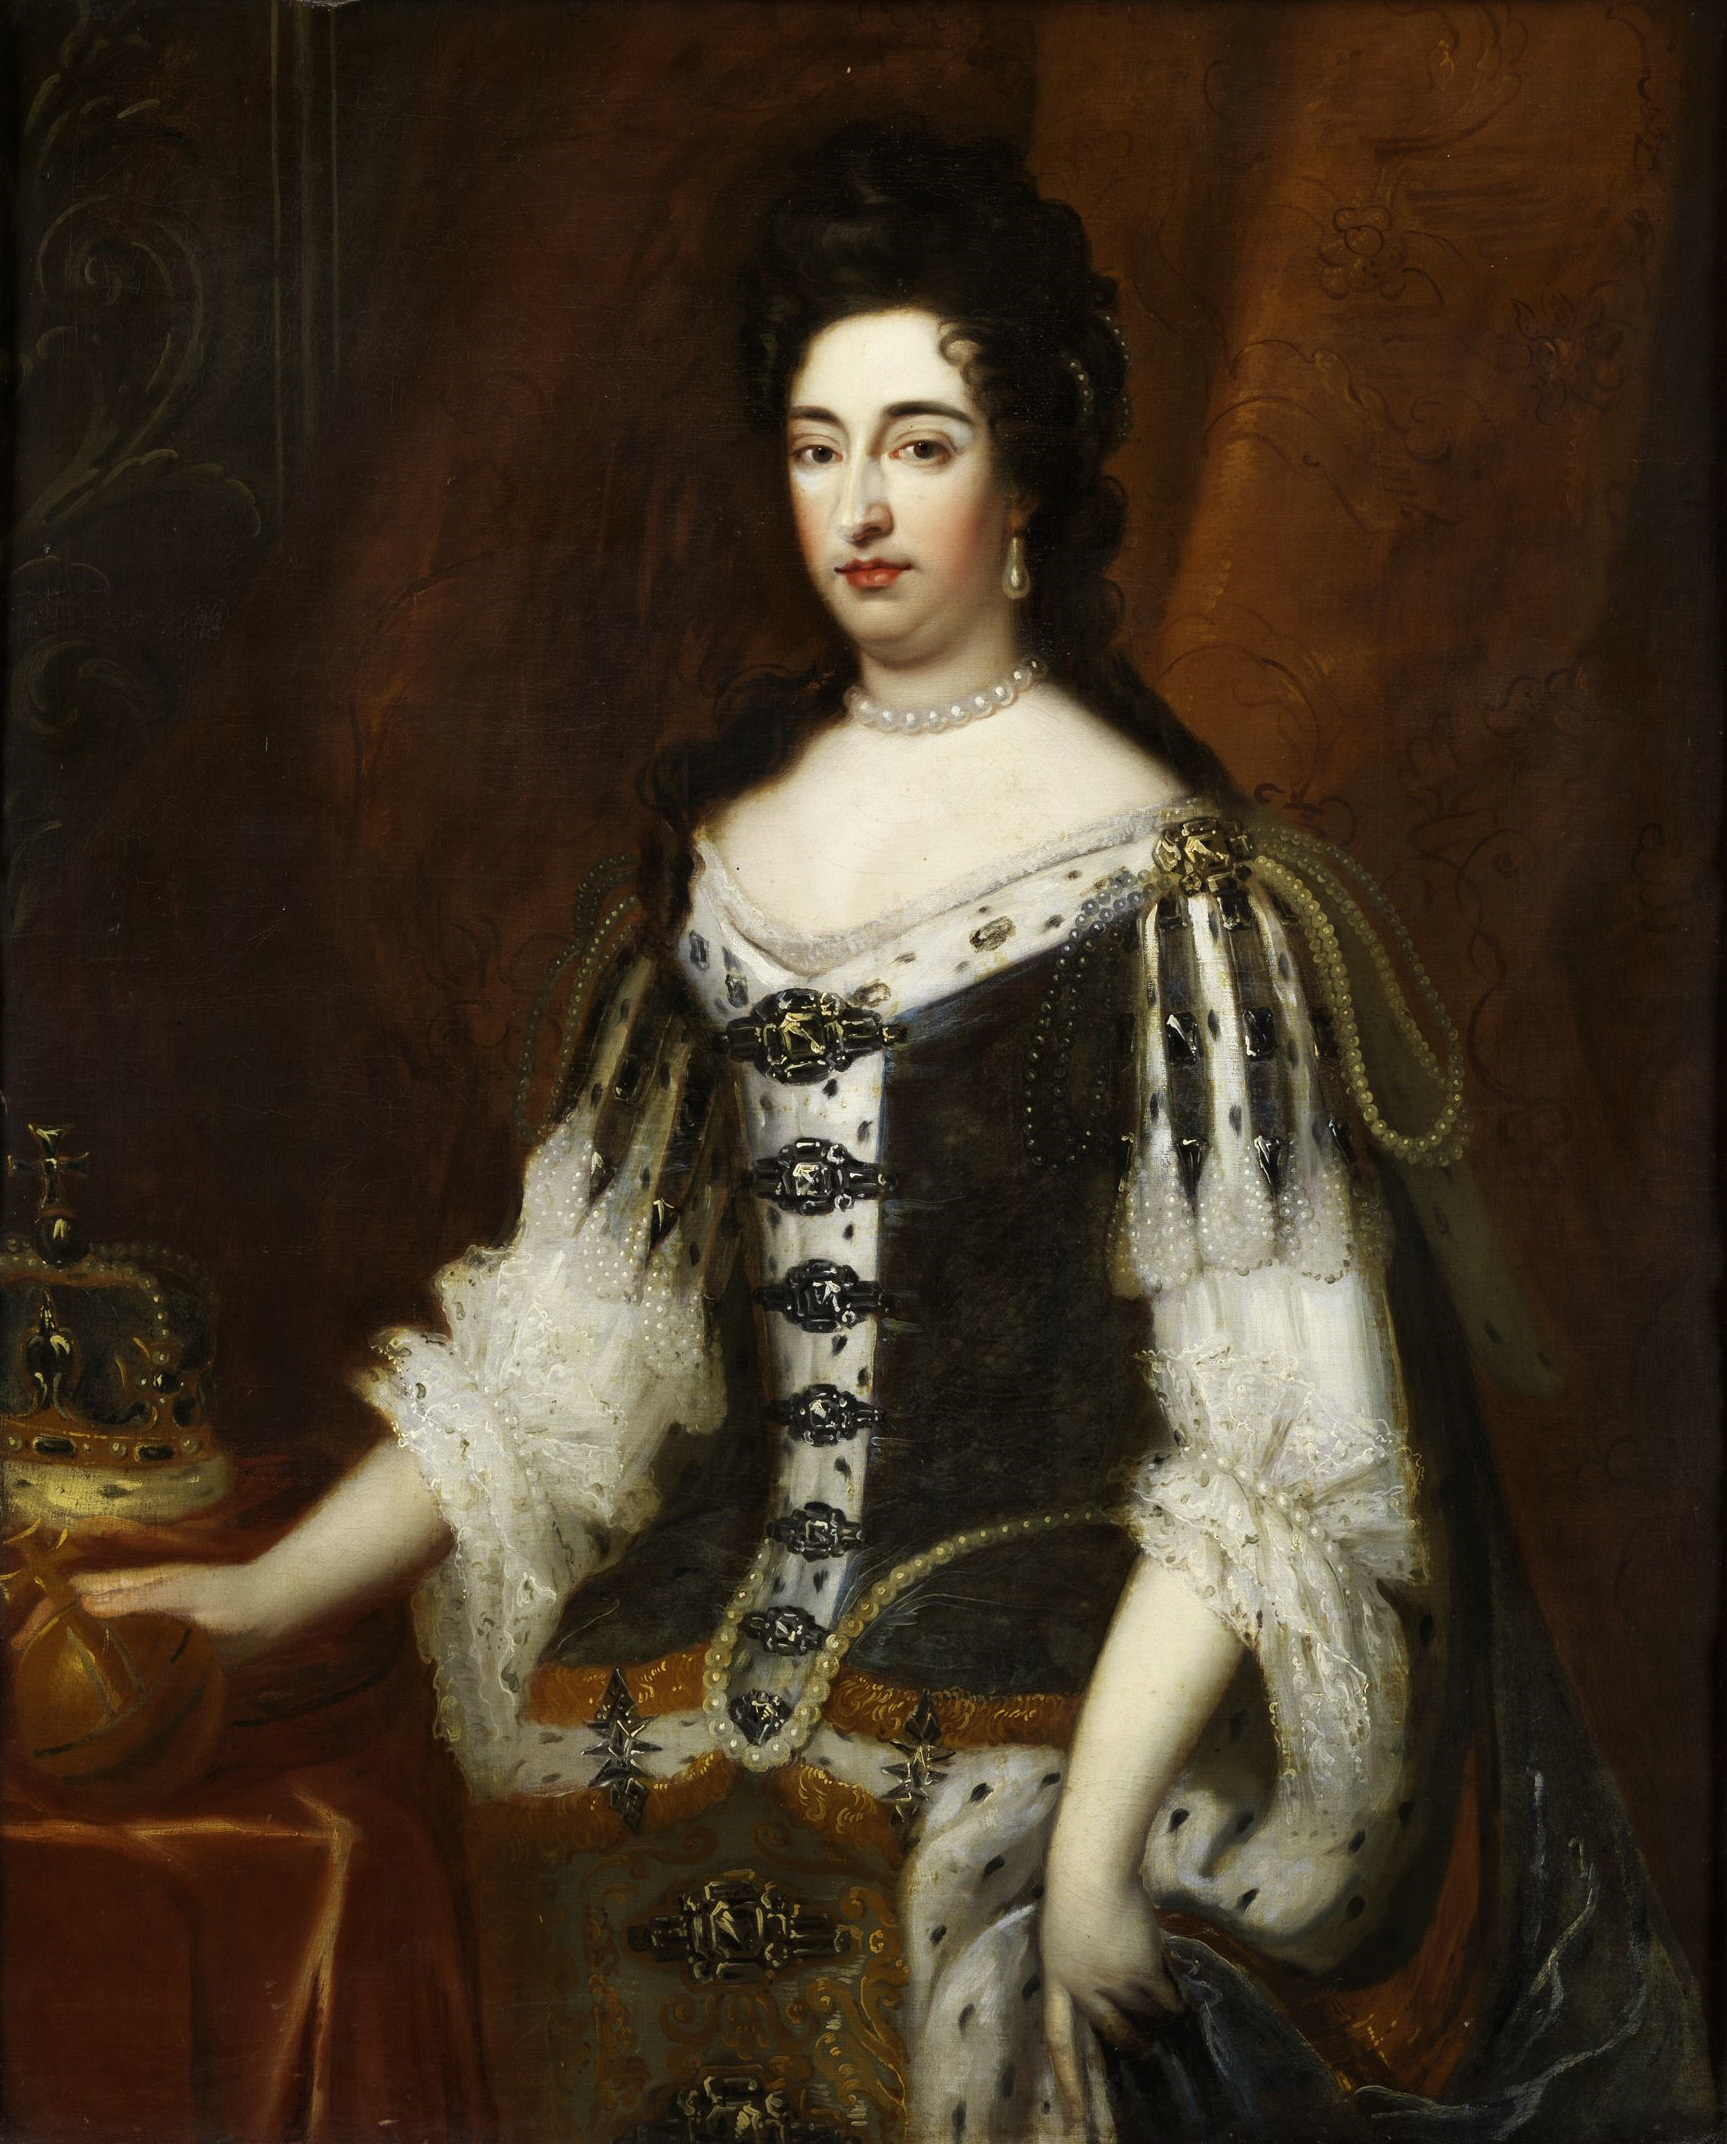 file queen mary ii th century portrait anonymous painter jpg file queen mary ii 18th century portrait anonymous painter jpg